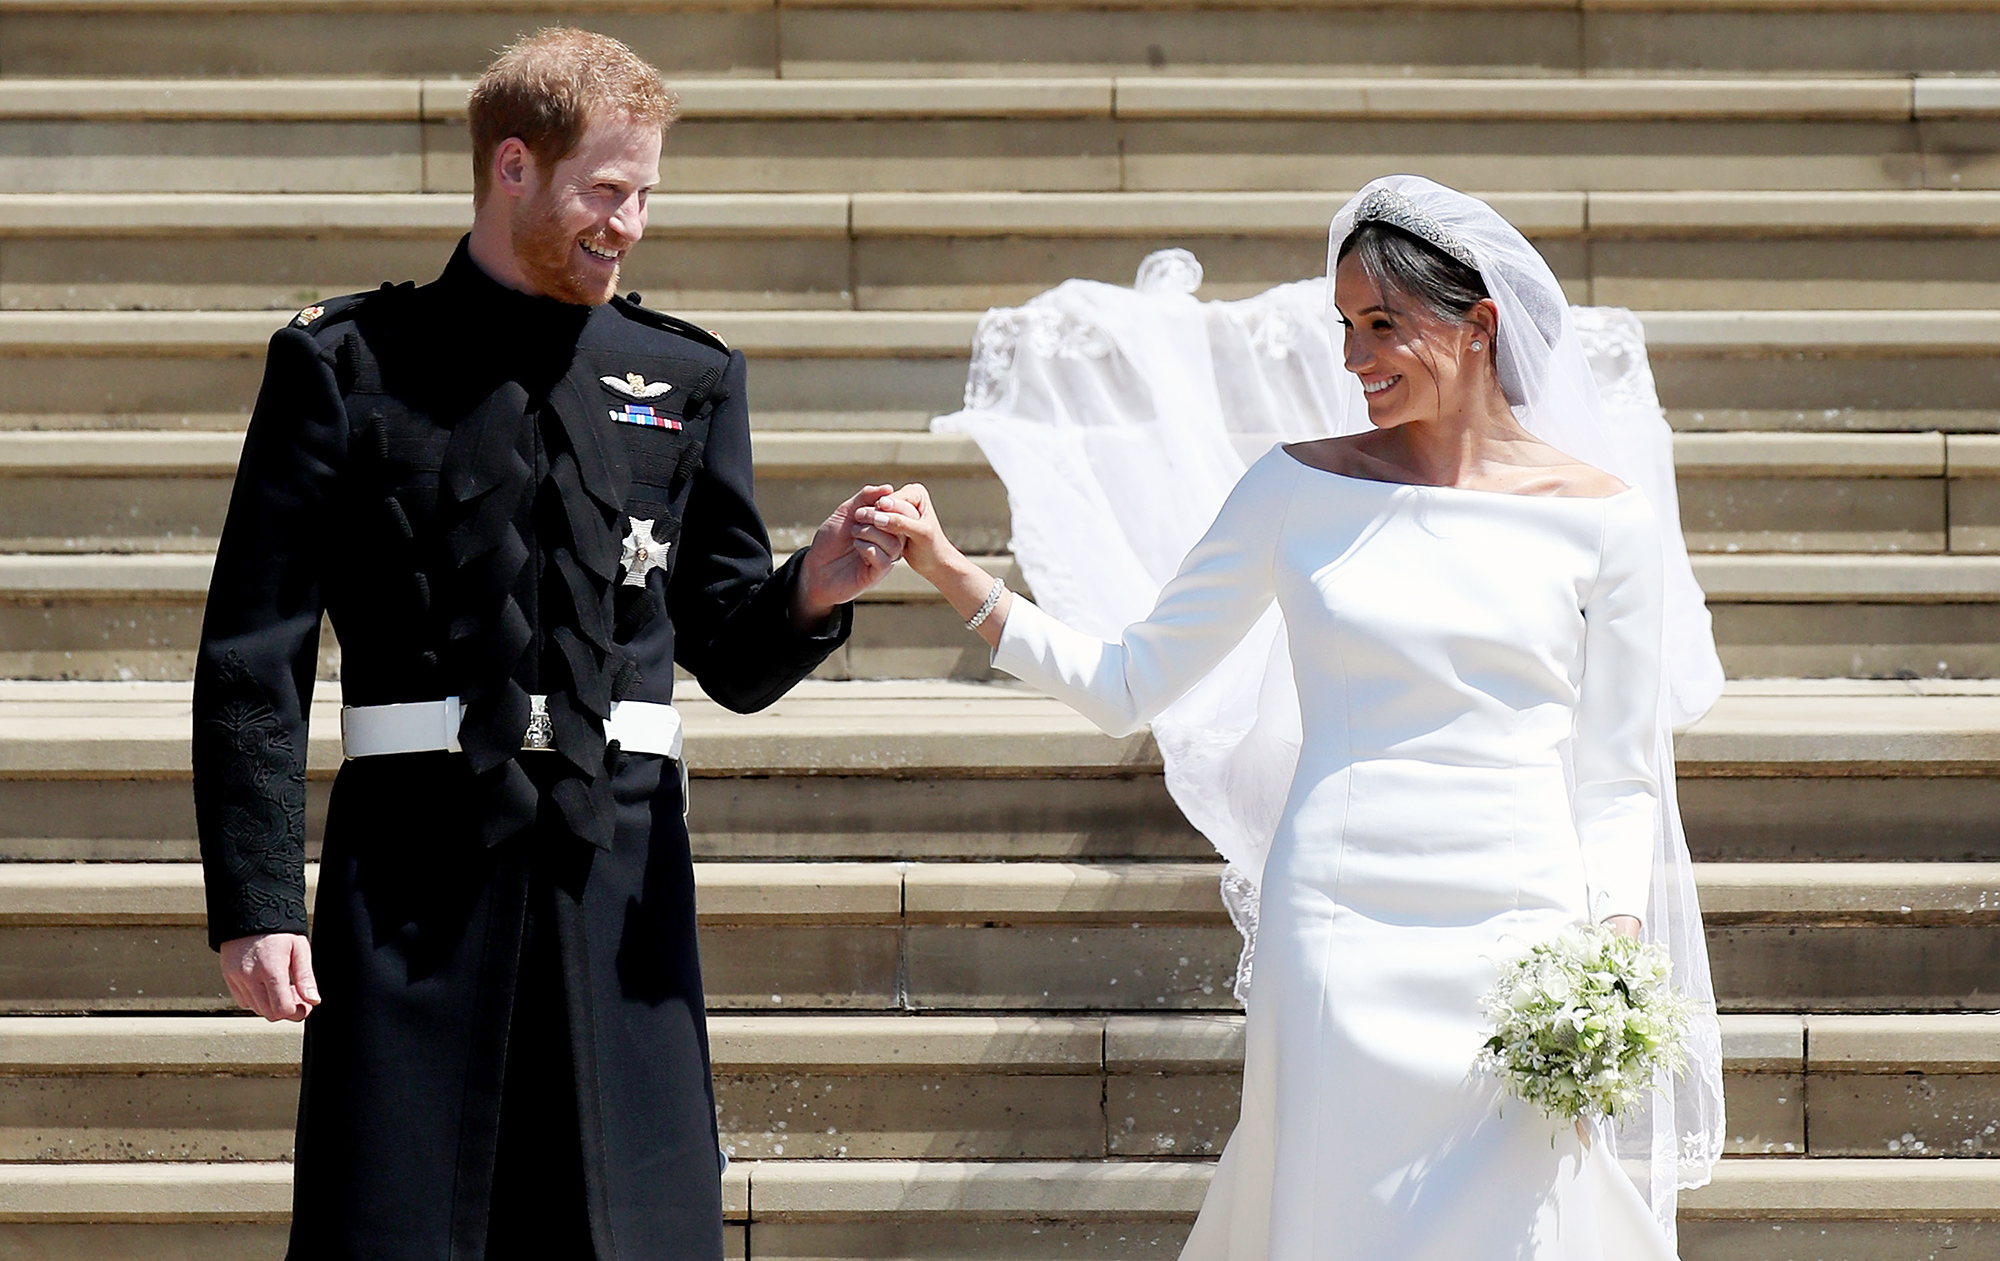 WHAT PRINCE HARRY'S AND MEGHAN MARKLE'S MARRIAGE DATE PORTENDS